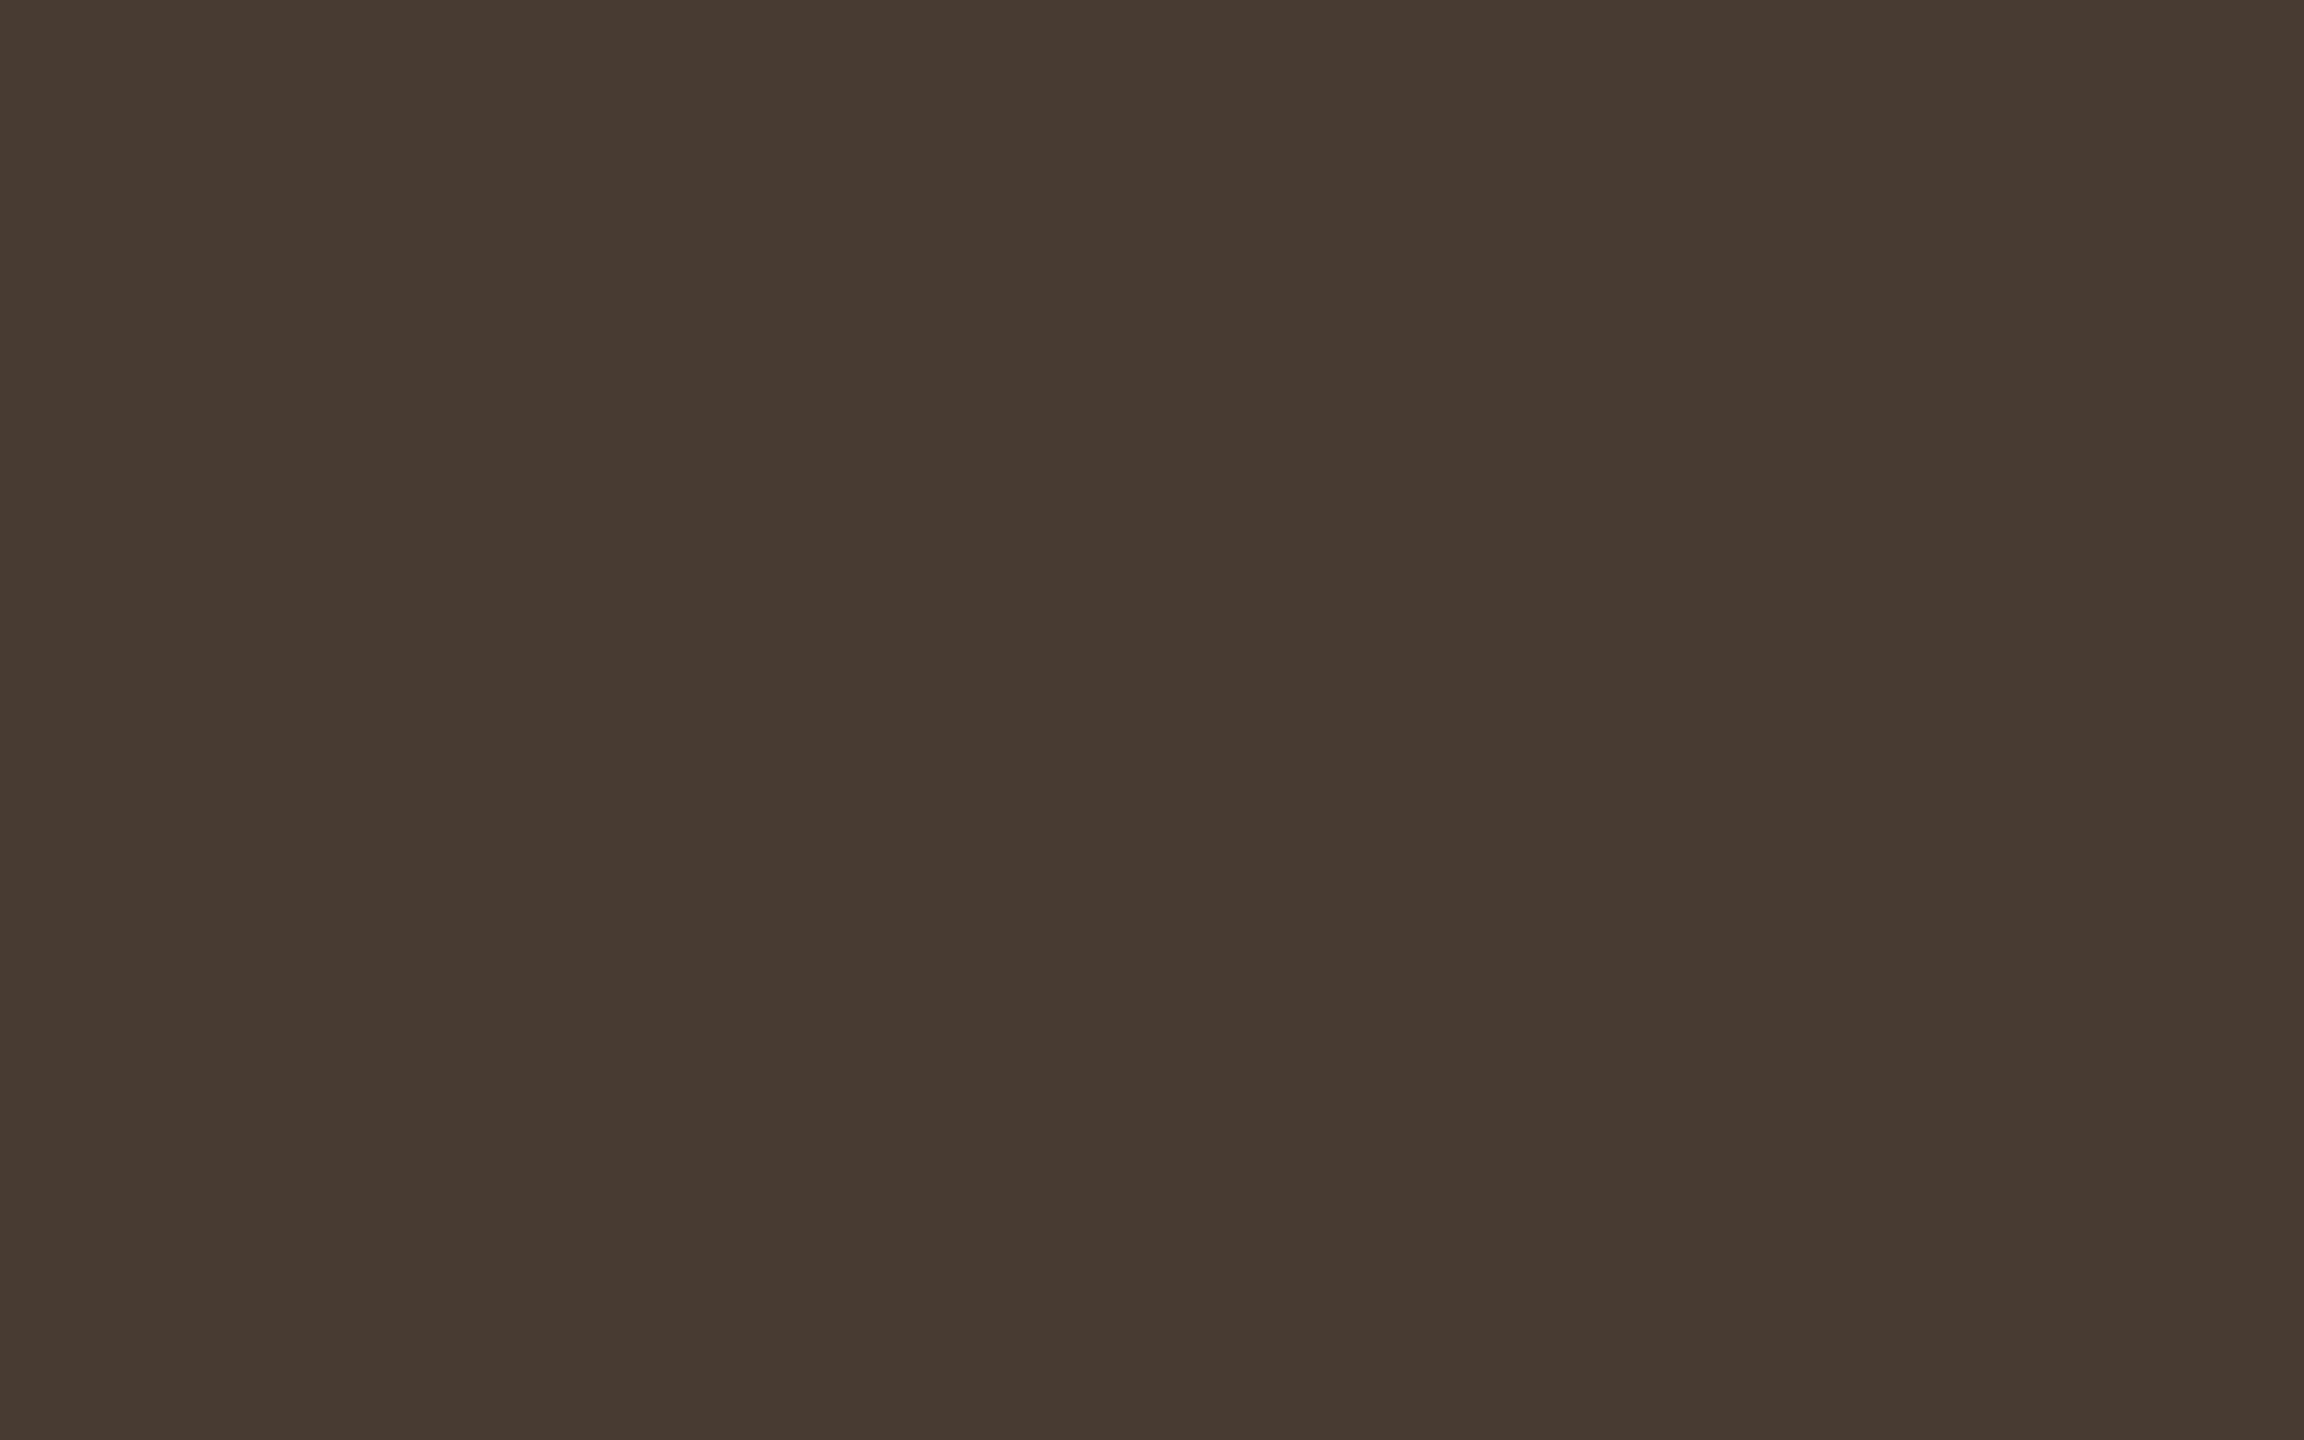 2304x1440 Dark Taupe Solid Color Background